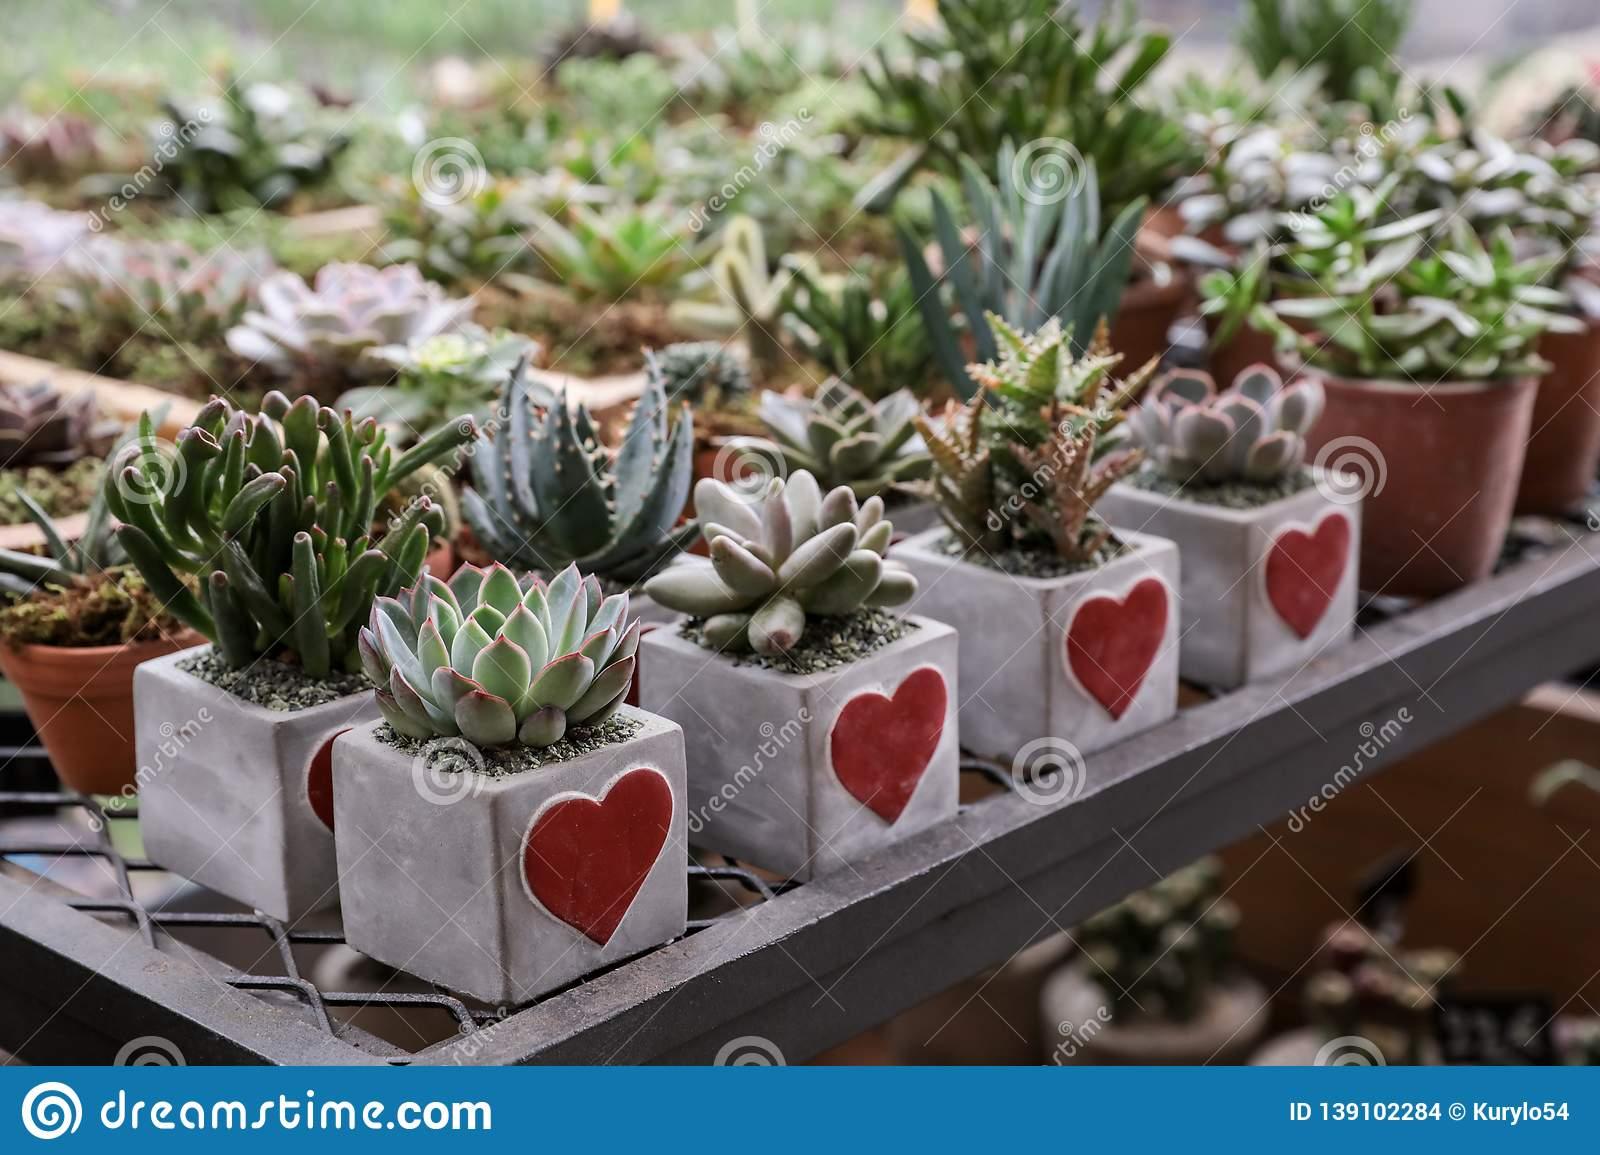 Succulents Plants Collection Prepared In Beautiful Pots For Valentines Day Gift Concept In The Flowers Bar Stock Photo Image Of Heart Concept 139102284